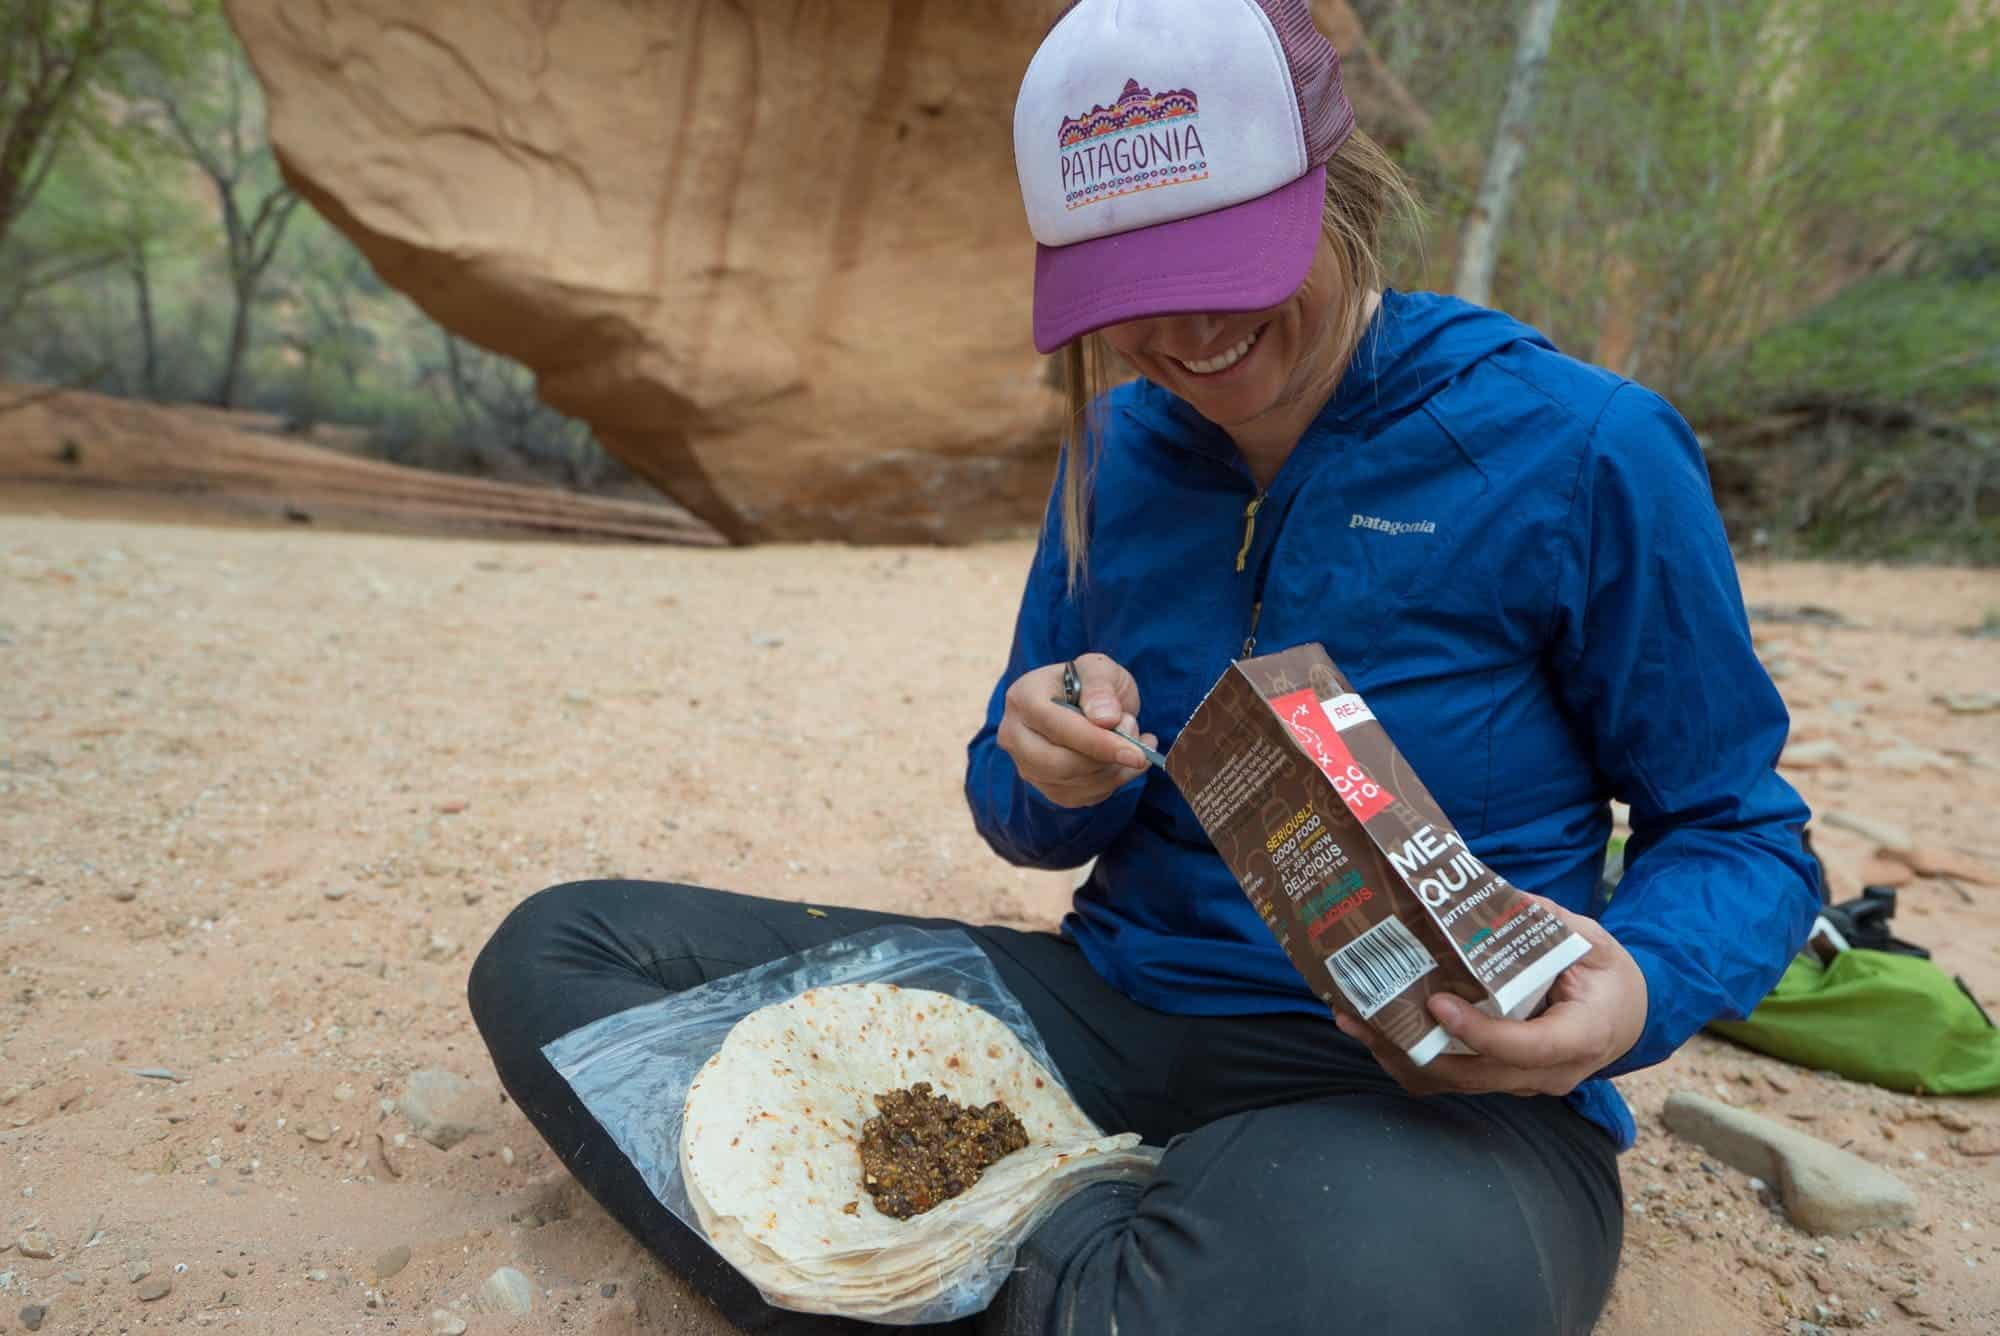 The practical guide on what to pack for a day hike based on the gear we really take on the trail. From the right hiking layers, to a comfortable pack, to healthy snacks and more, here are our favorite day hiking essentials.